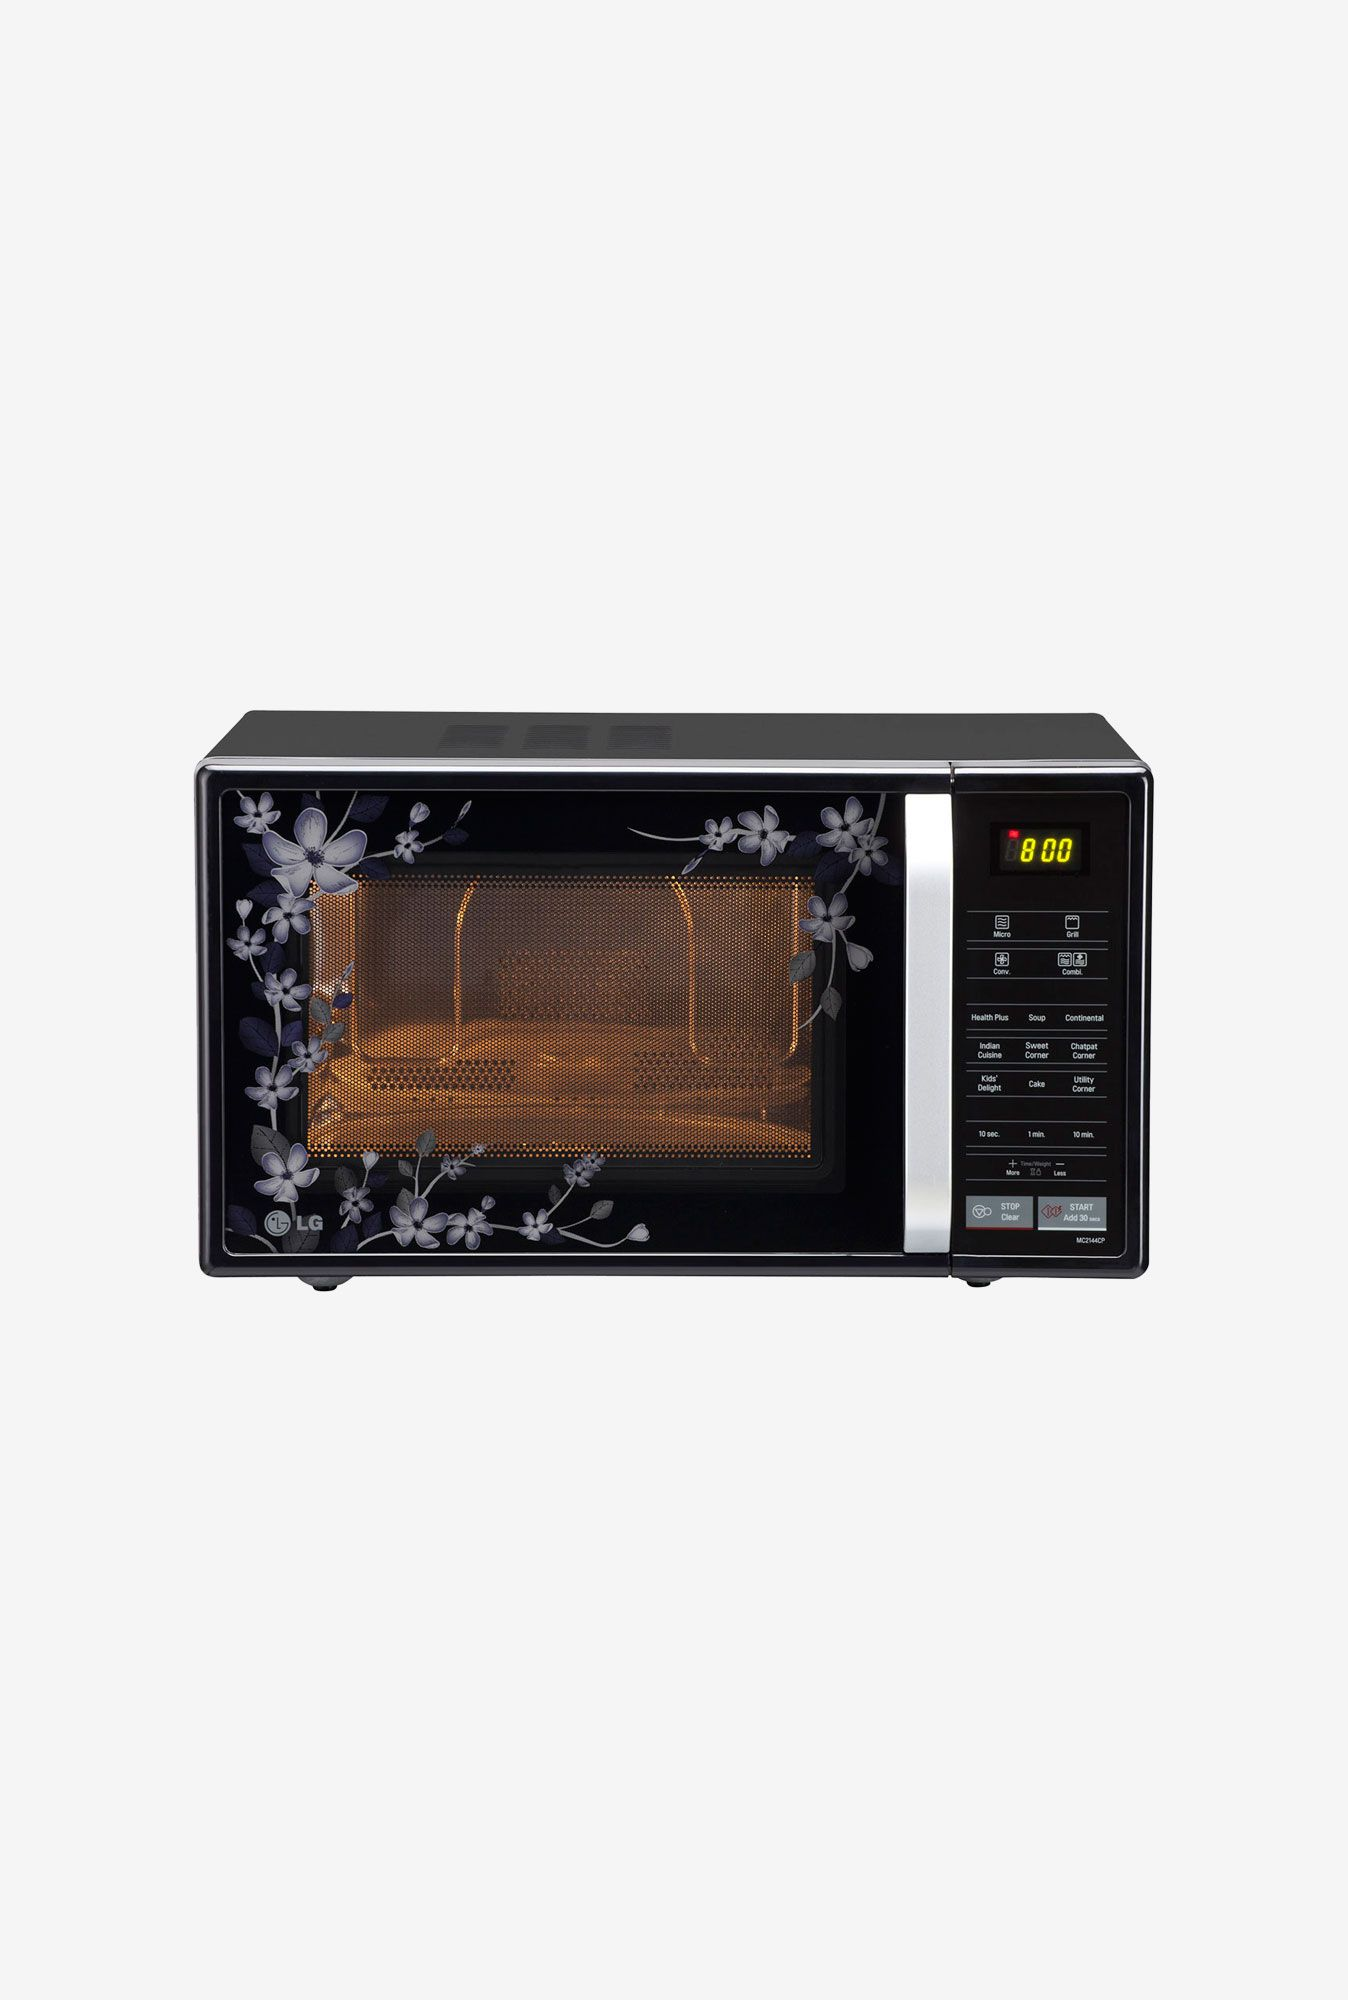 Topprice In Price Comparison In India Microwave Convection Oven